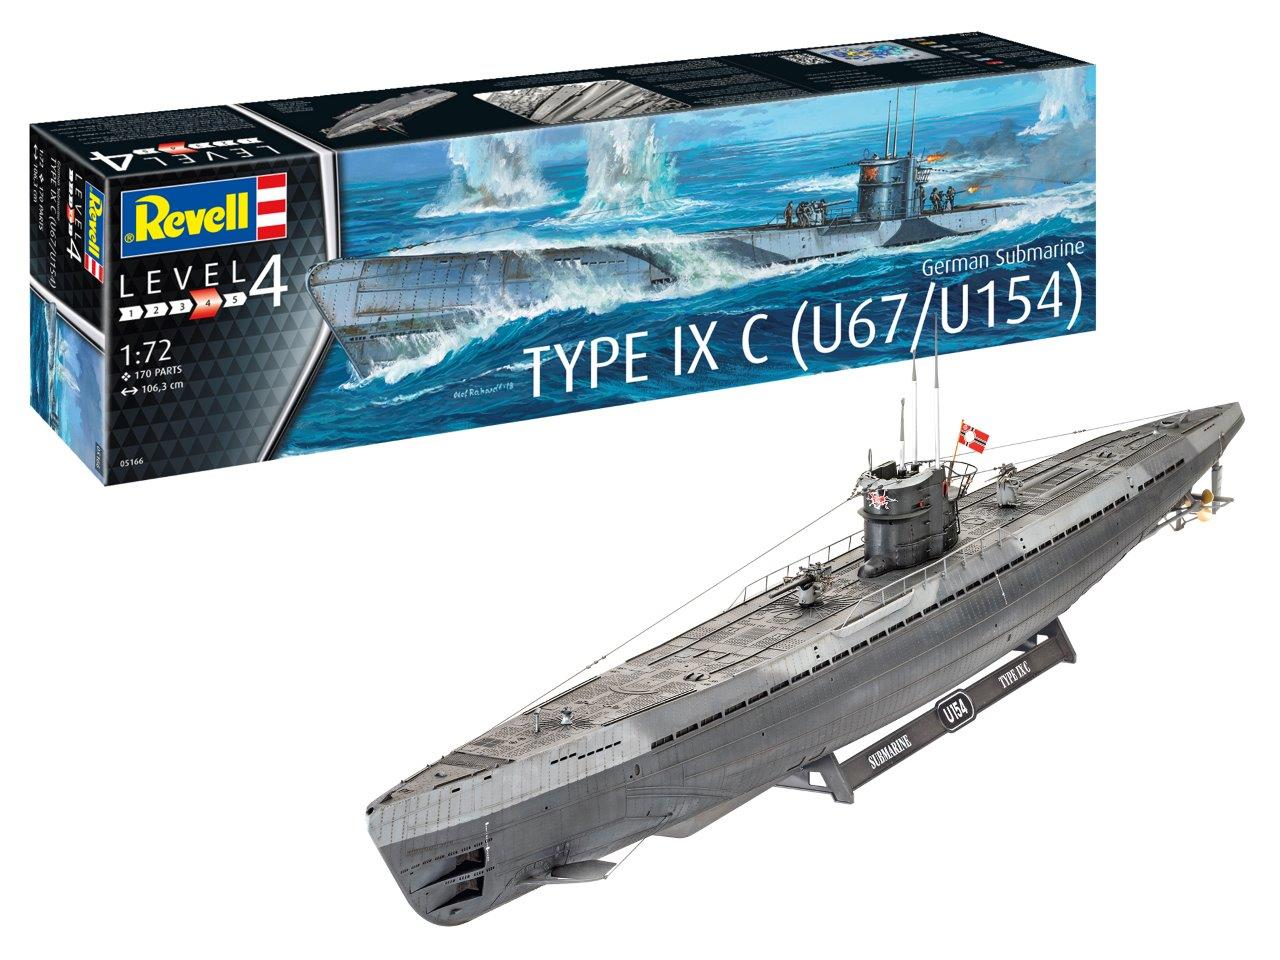 medium resolution of description german submarine type ixc early turret due september 2019 manufacturer revell code number rv5166 scale 1 72 item type ship kits